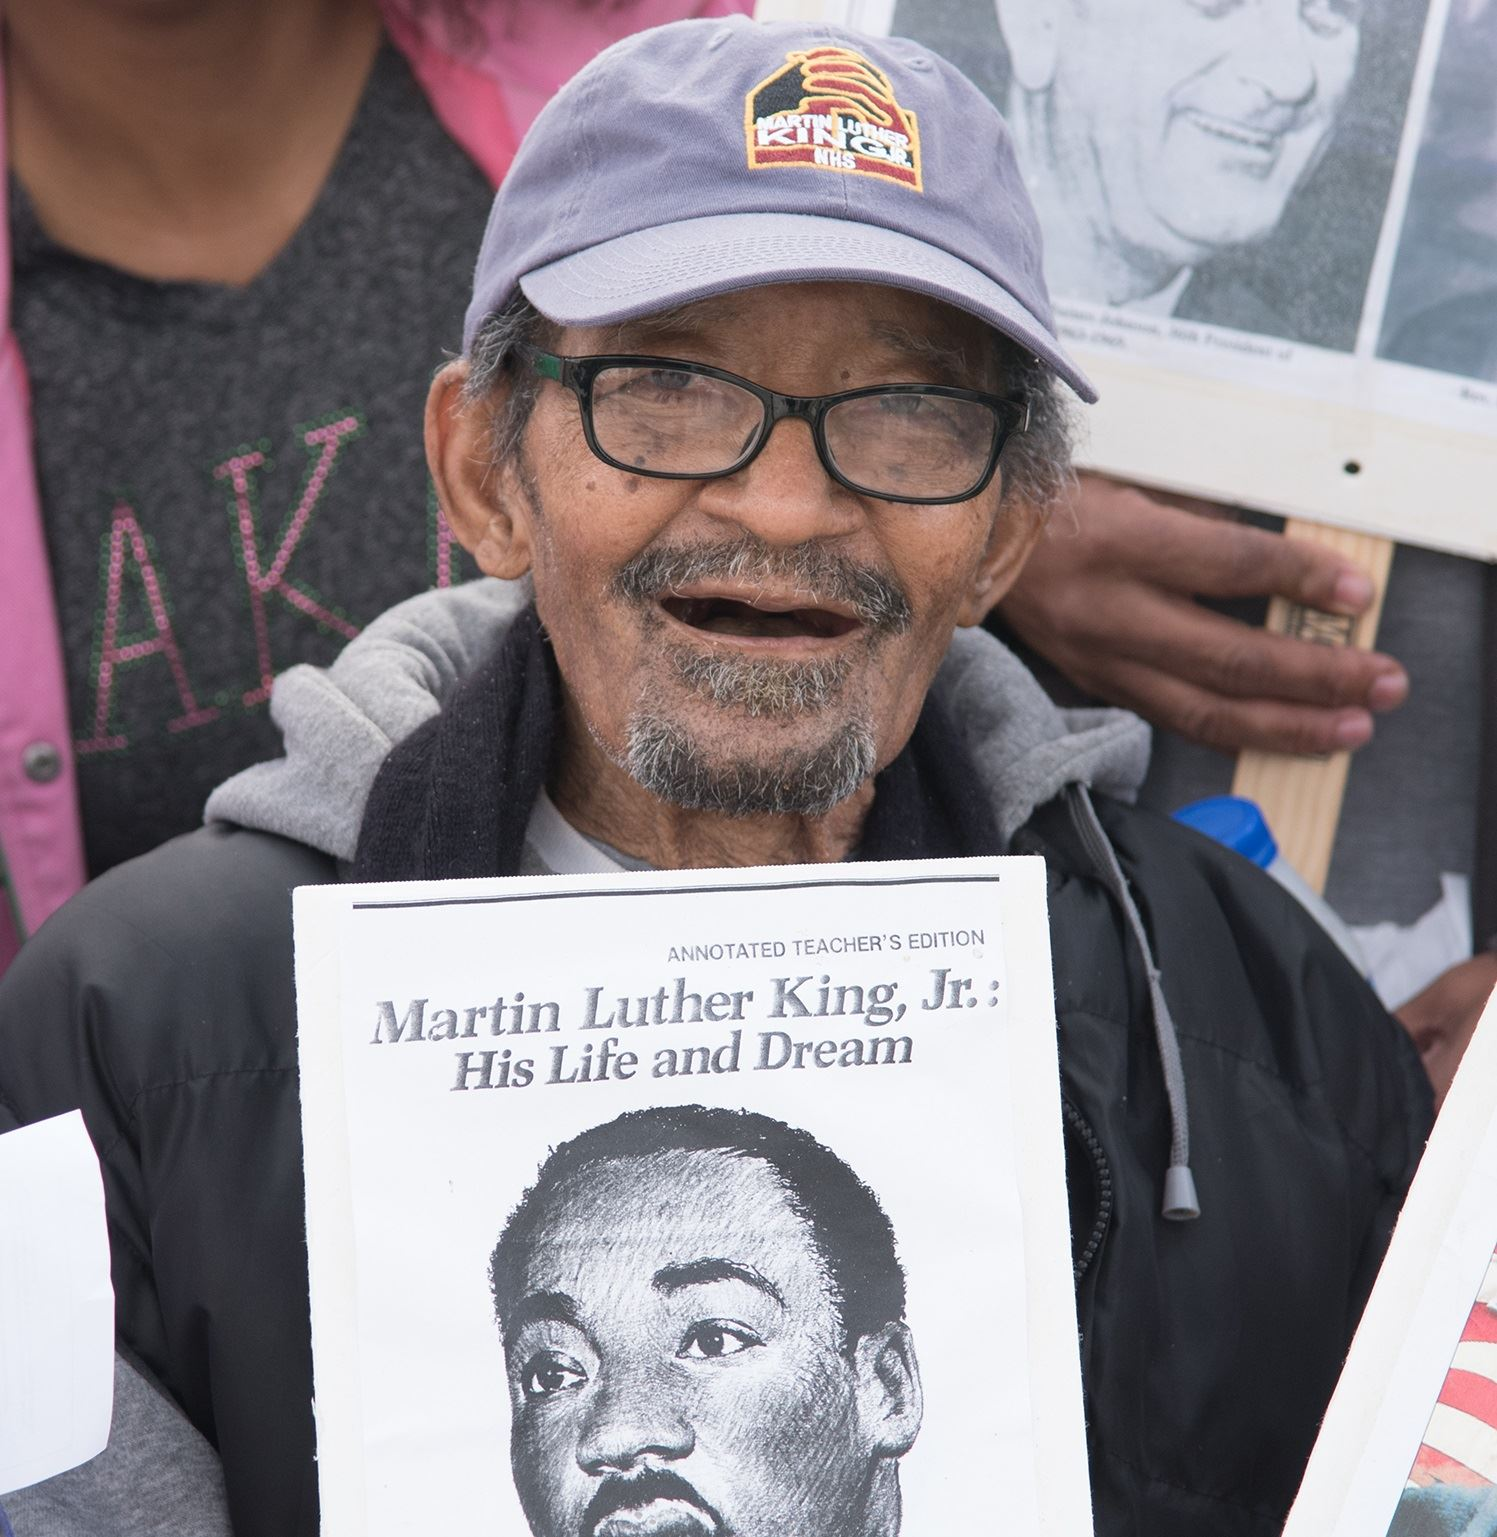 Harvey Miller at 2018 MLK March photo by Don Anders